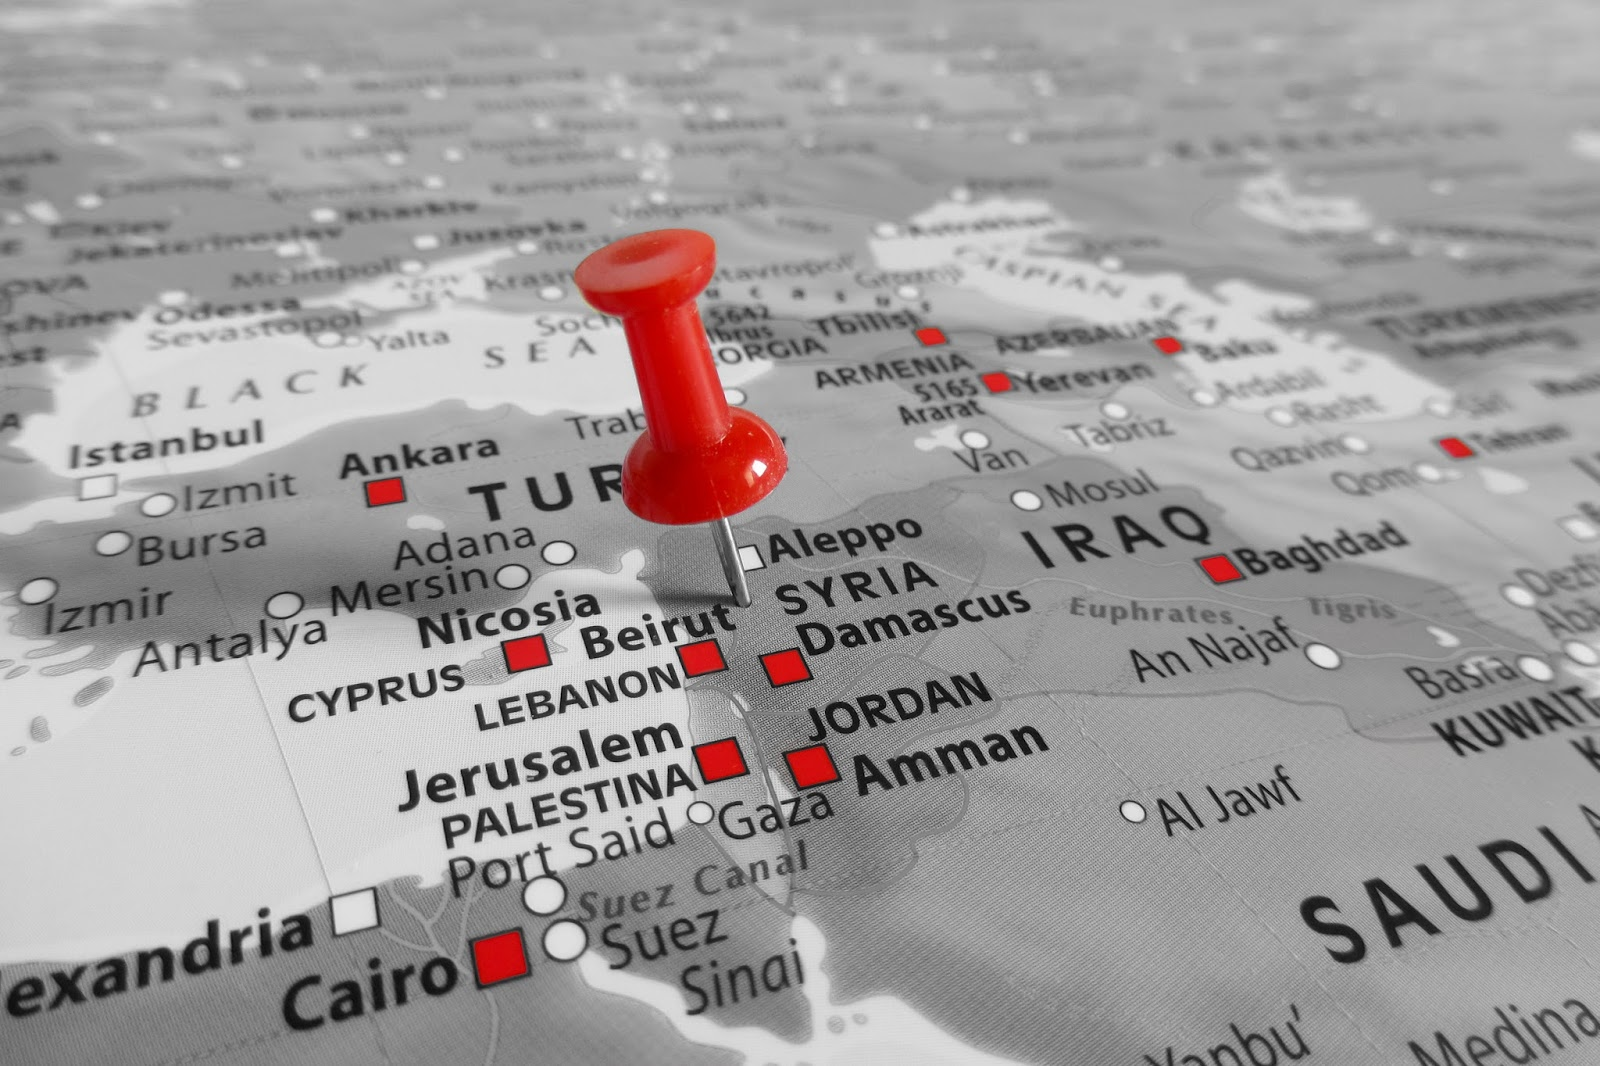 middle east crisis syria israel russia courtesy of TonelloPhotography shuttesrstock com _285900158